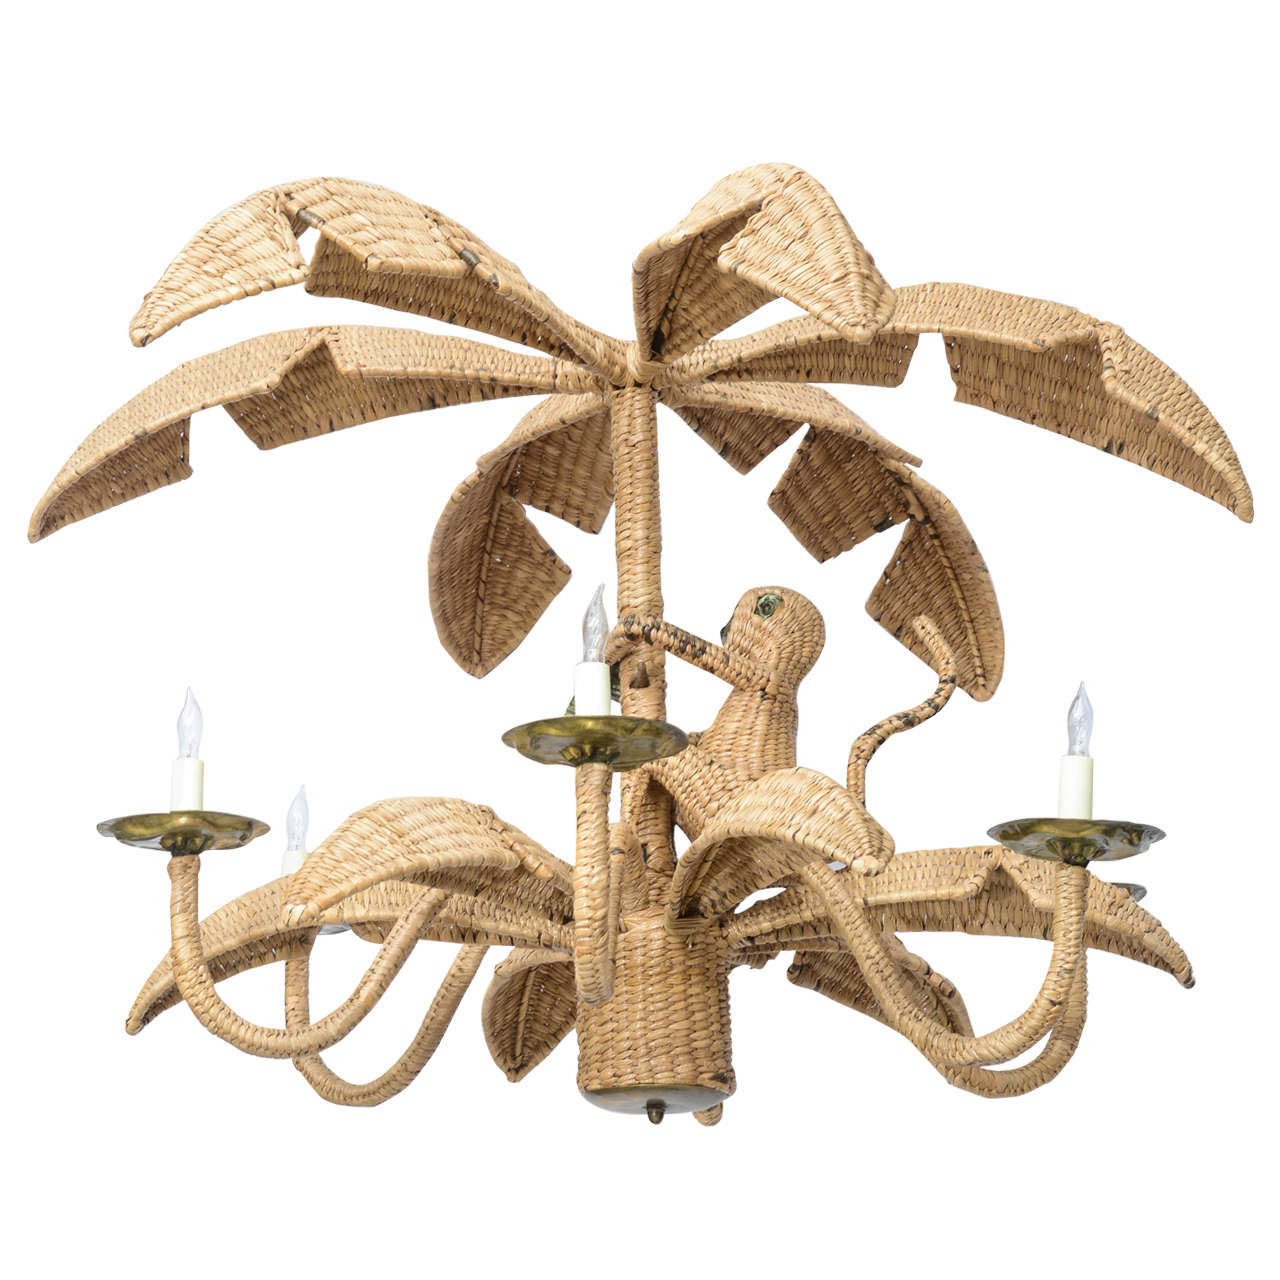 Monkey Chandelier Whimsical Wicker And Mixed Metal By